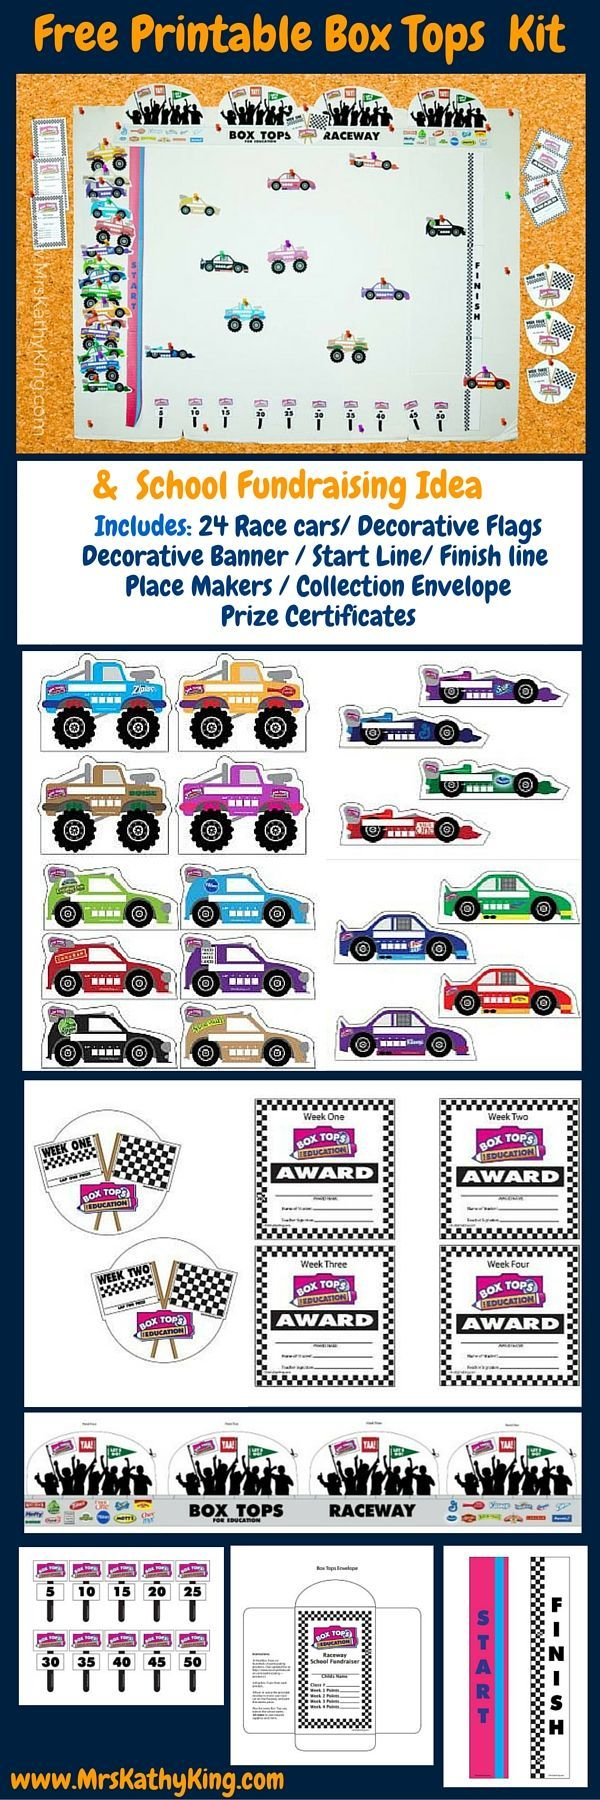 Are you looking for Box Tops For Education School Fundraising Idea that will get the whole class involved? Our Free Printable Box Tops School Fundraising Idea & Kit includes Includes: 24 Race cars/ Decorative Flags Decorative Banner / Start Line/ Finish line Place Makers / Collection Envelope Prize Certificates #BTFE #spon